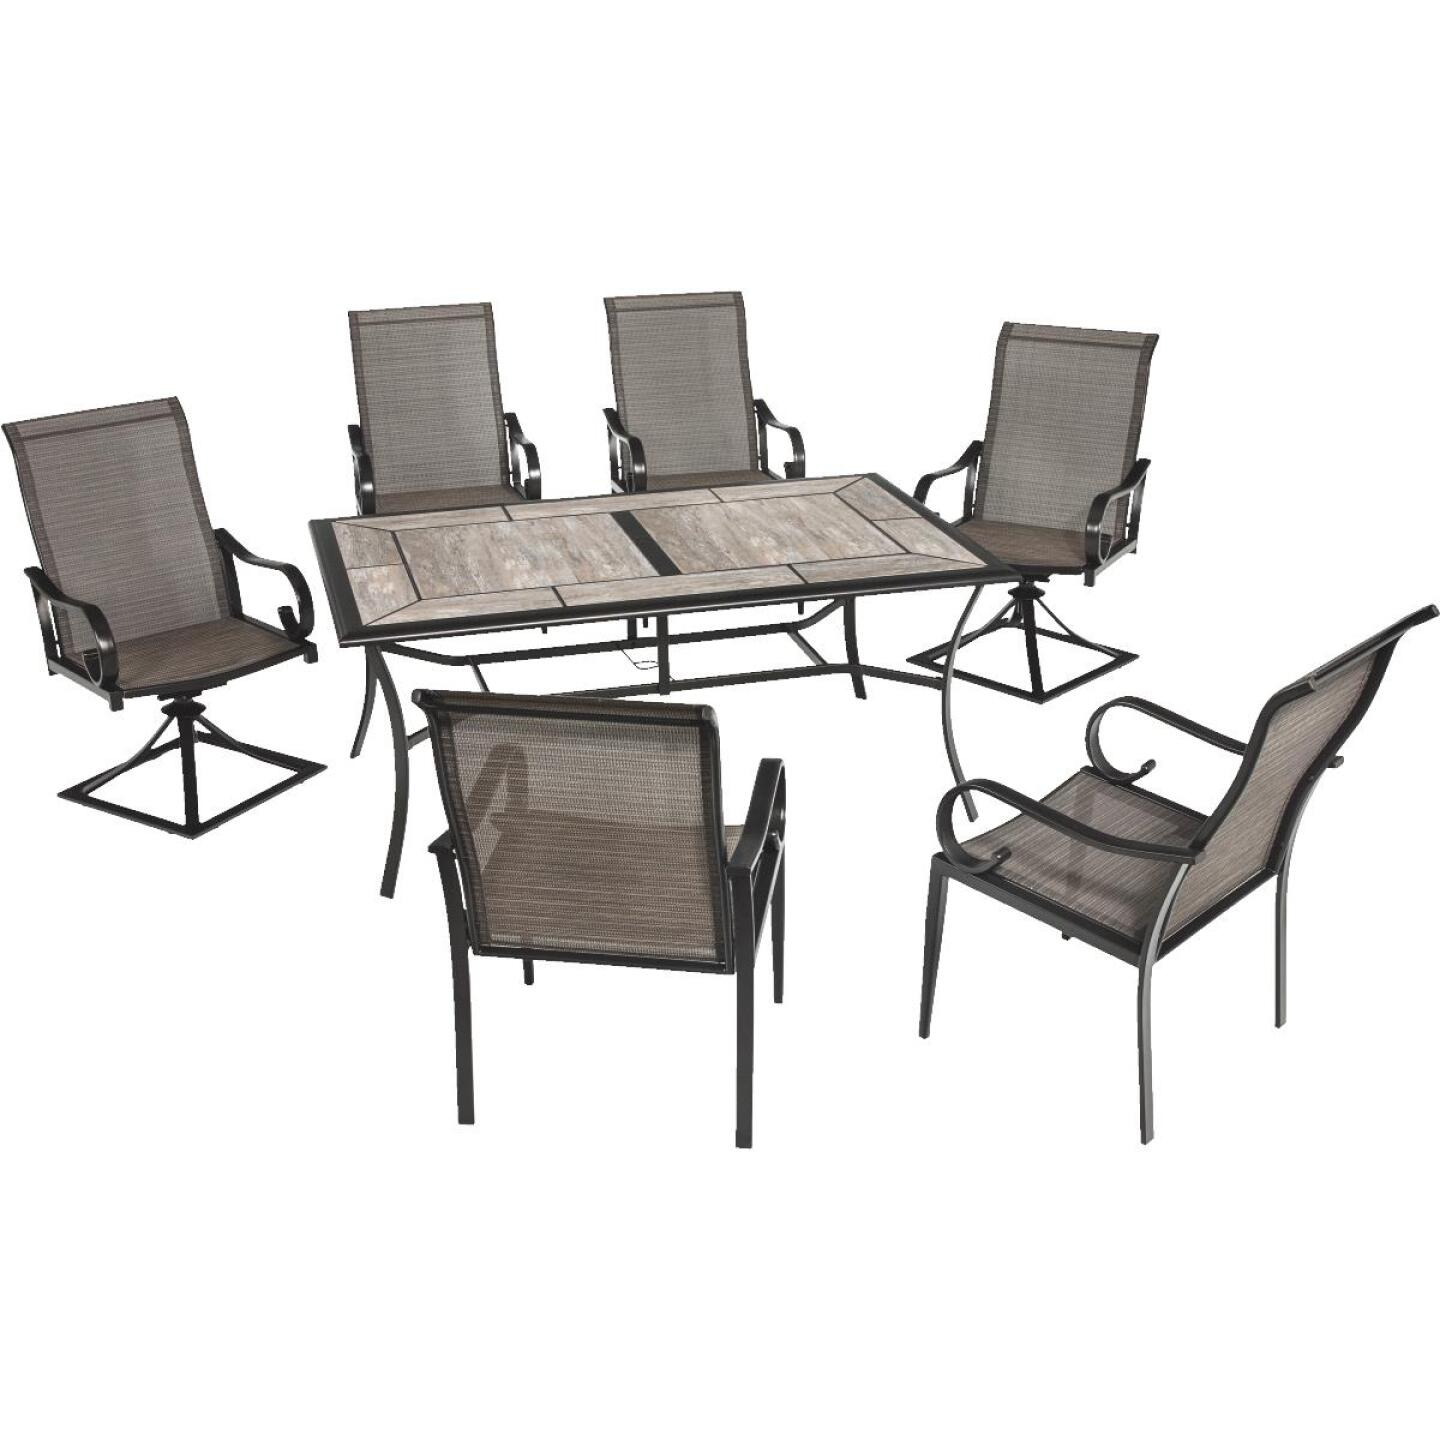 Outdoor Expressions Berkshire 7-Piece Dining Set Image 1